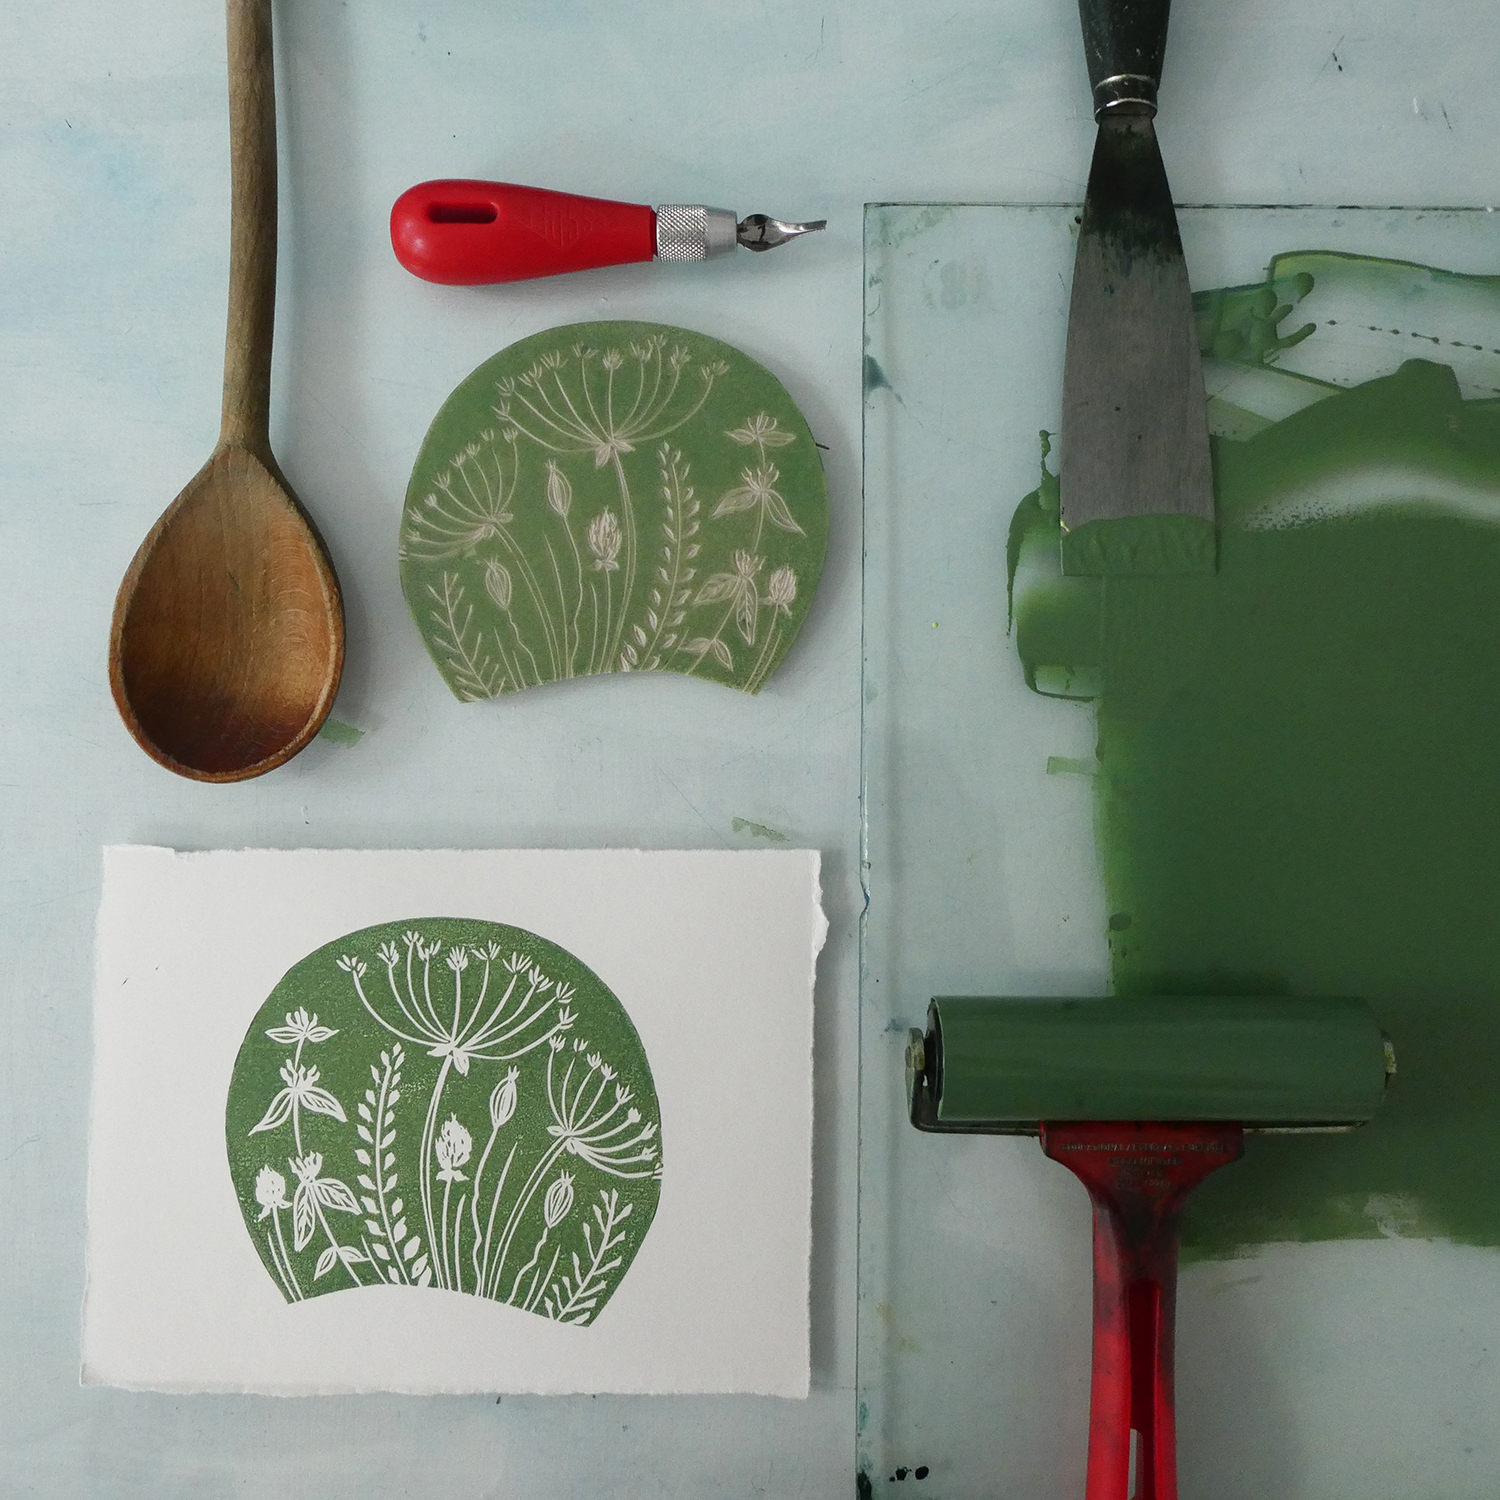 Learn how to print by hand using water-based inks